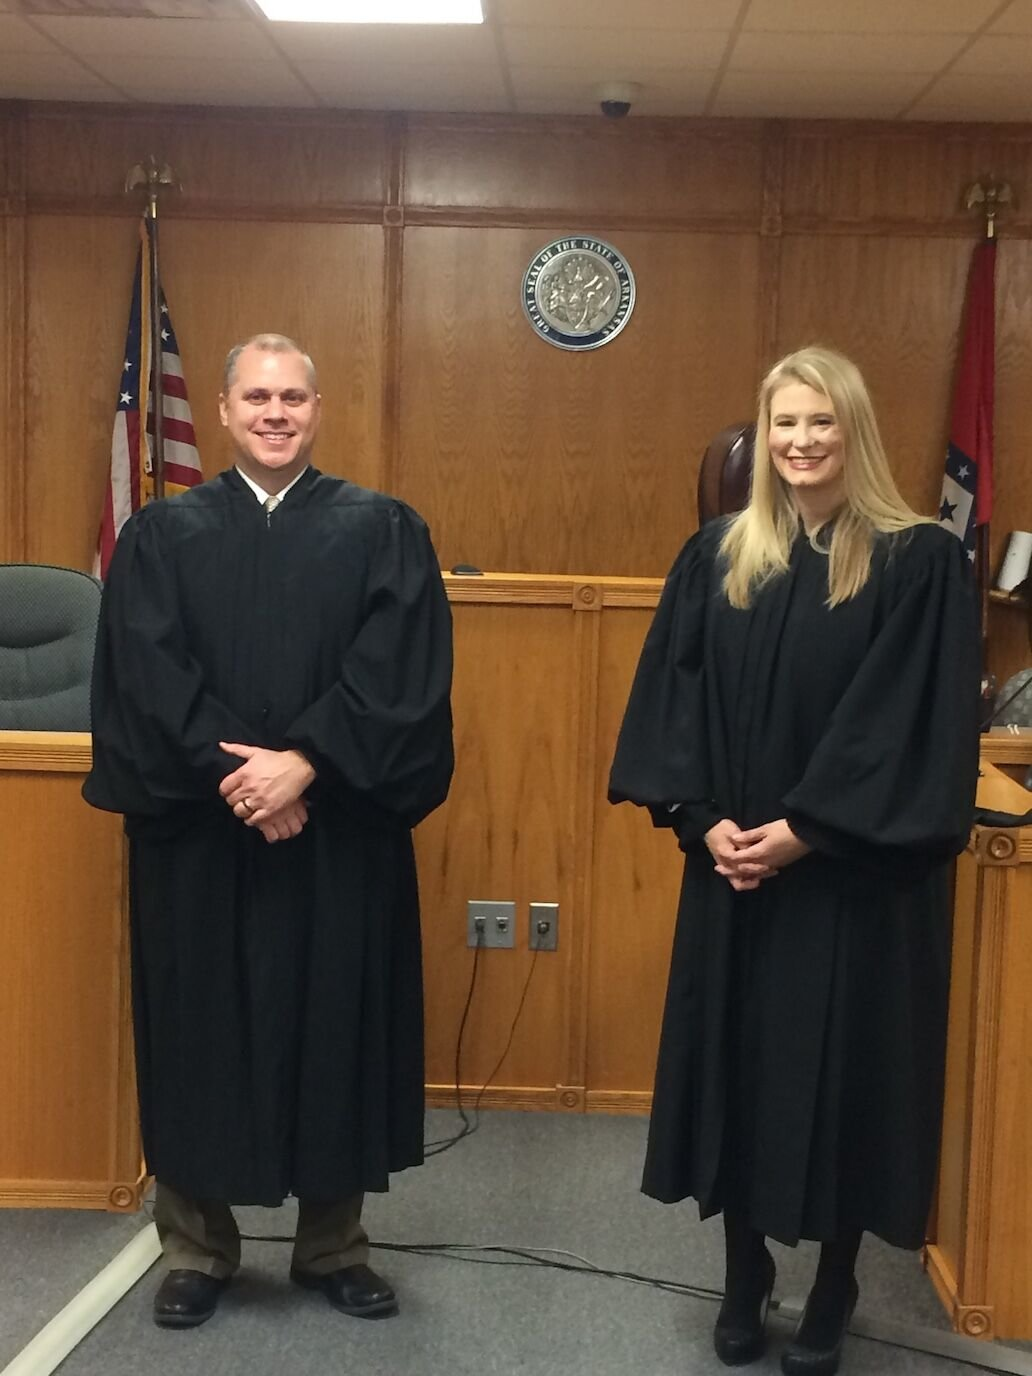 Justice Shawn Womack of the Arkansas Supreme Court presided over the swearing in ceremony of Circuit Judge Johnnie Copeland on Friday, January 1, 2021.  Judge Copeland succeeds Judge Gordon Webb who retired